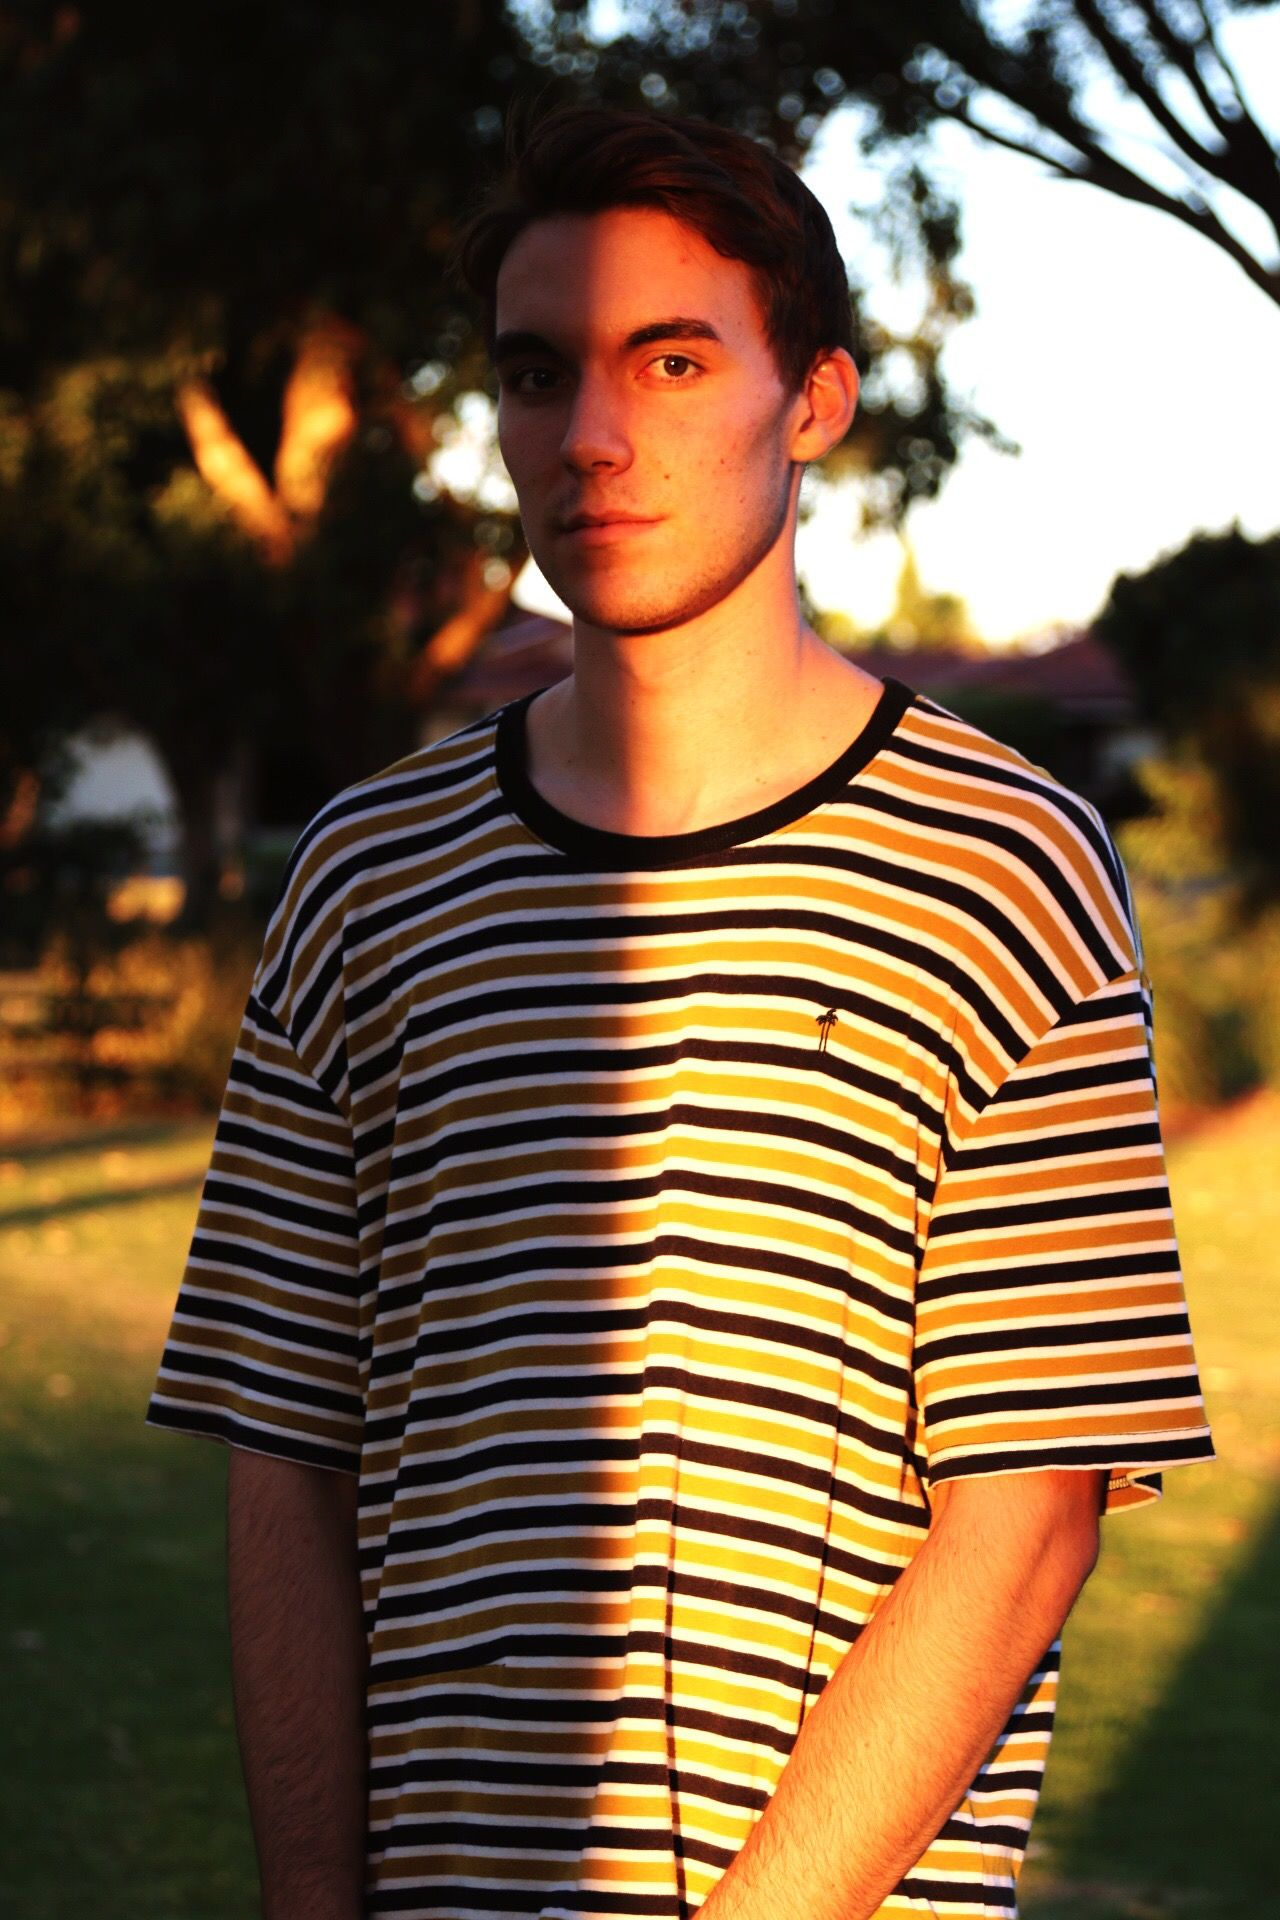 Portrait of young man standing in sunlight at park